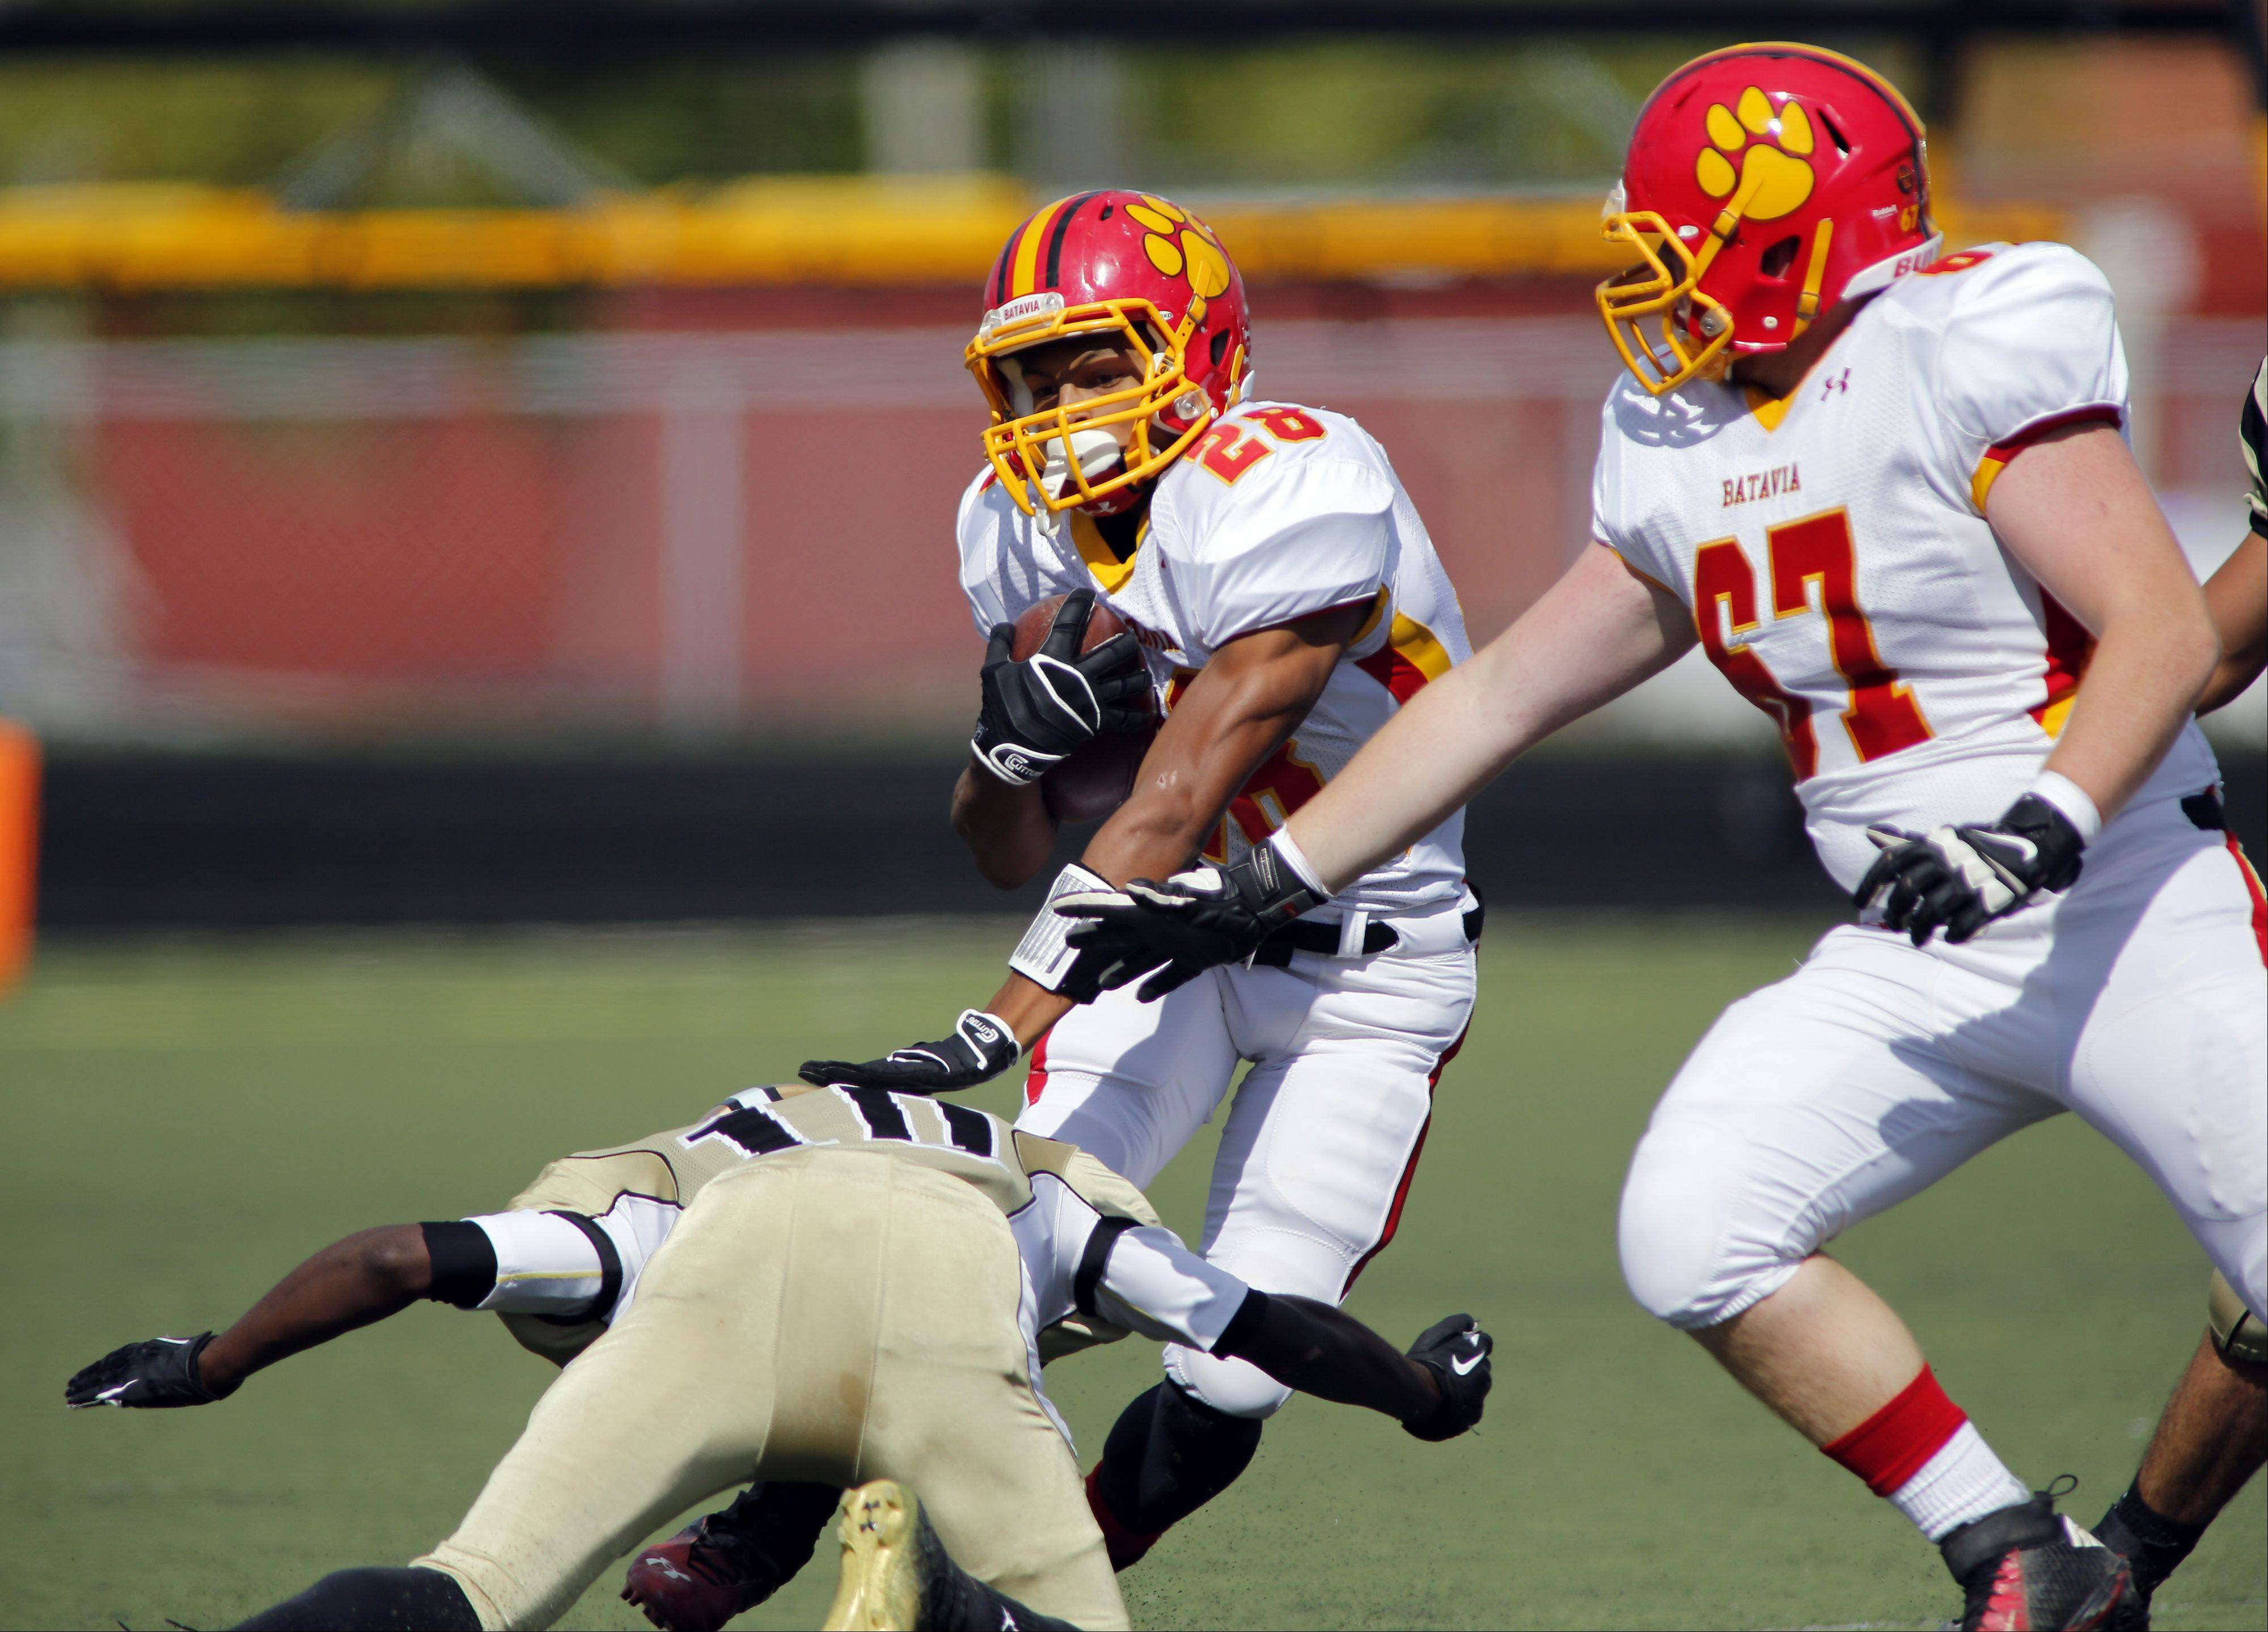 Batavia's Anthony Scaccia works upfield past Streamwood's Jelyn Hill Saturday.